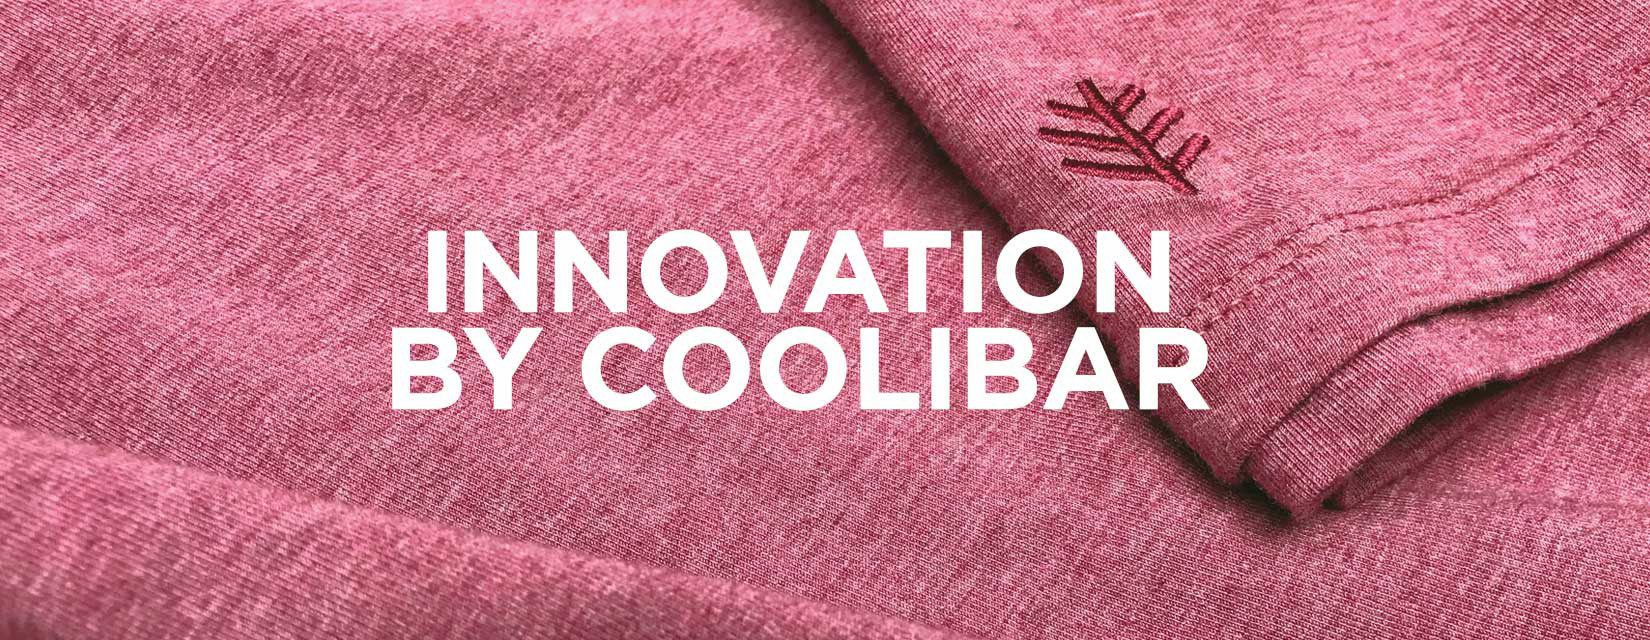 Innovation with Coolibar